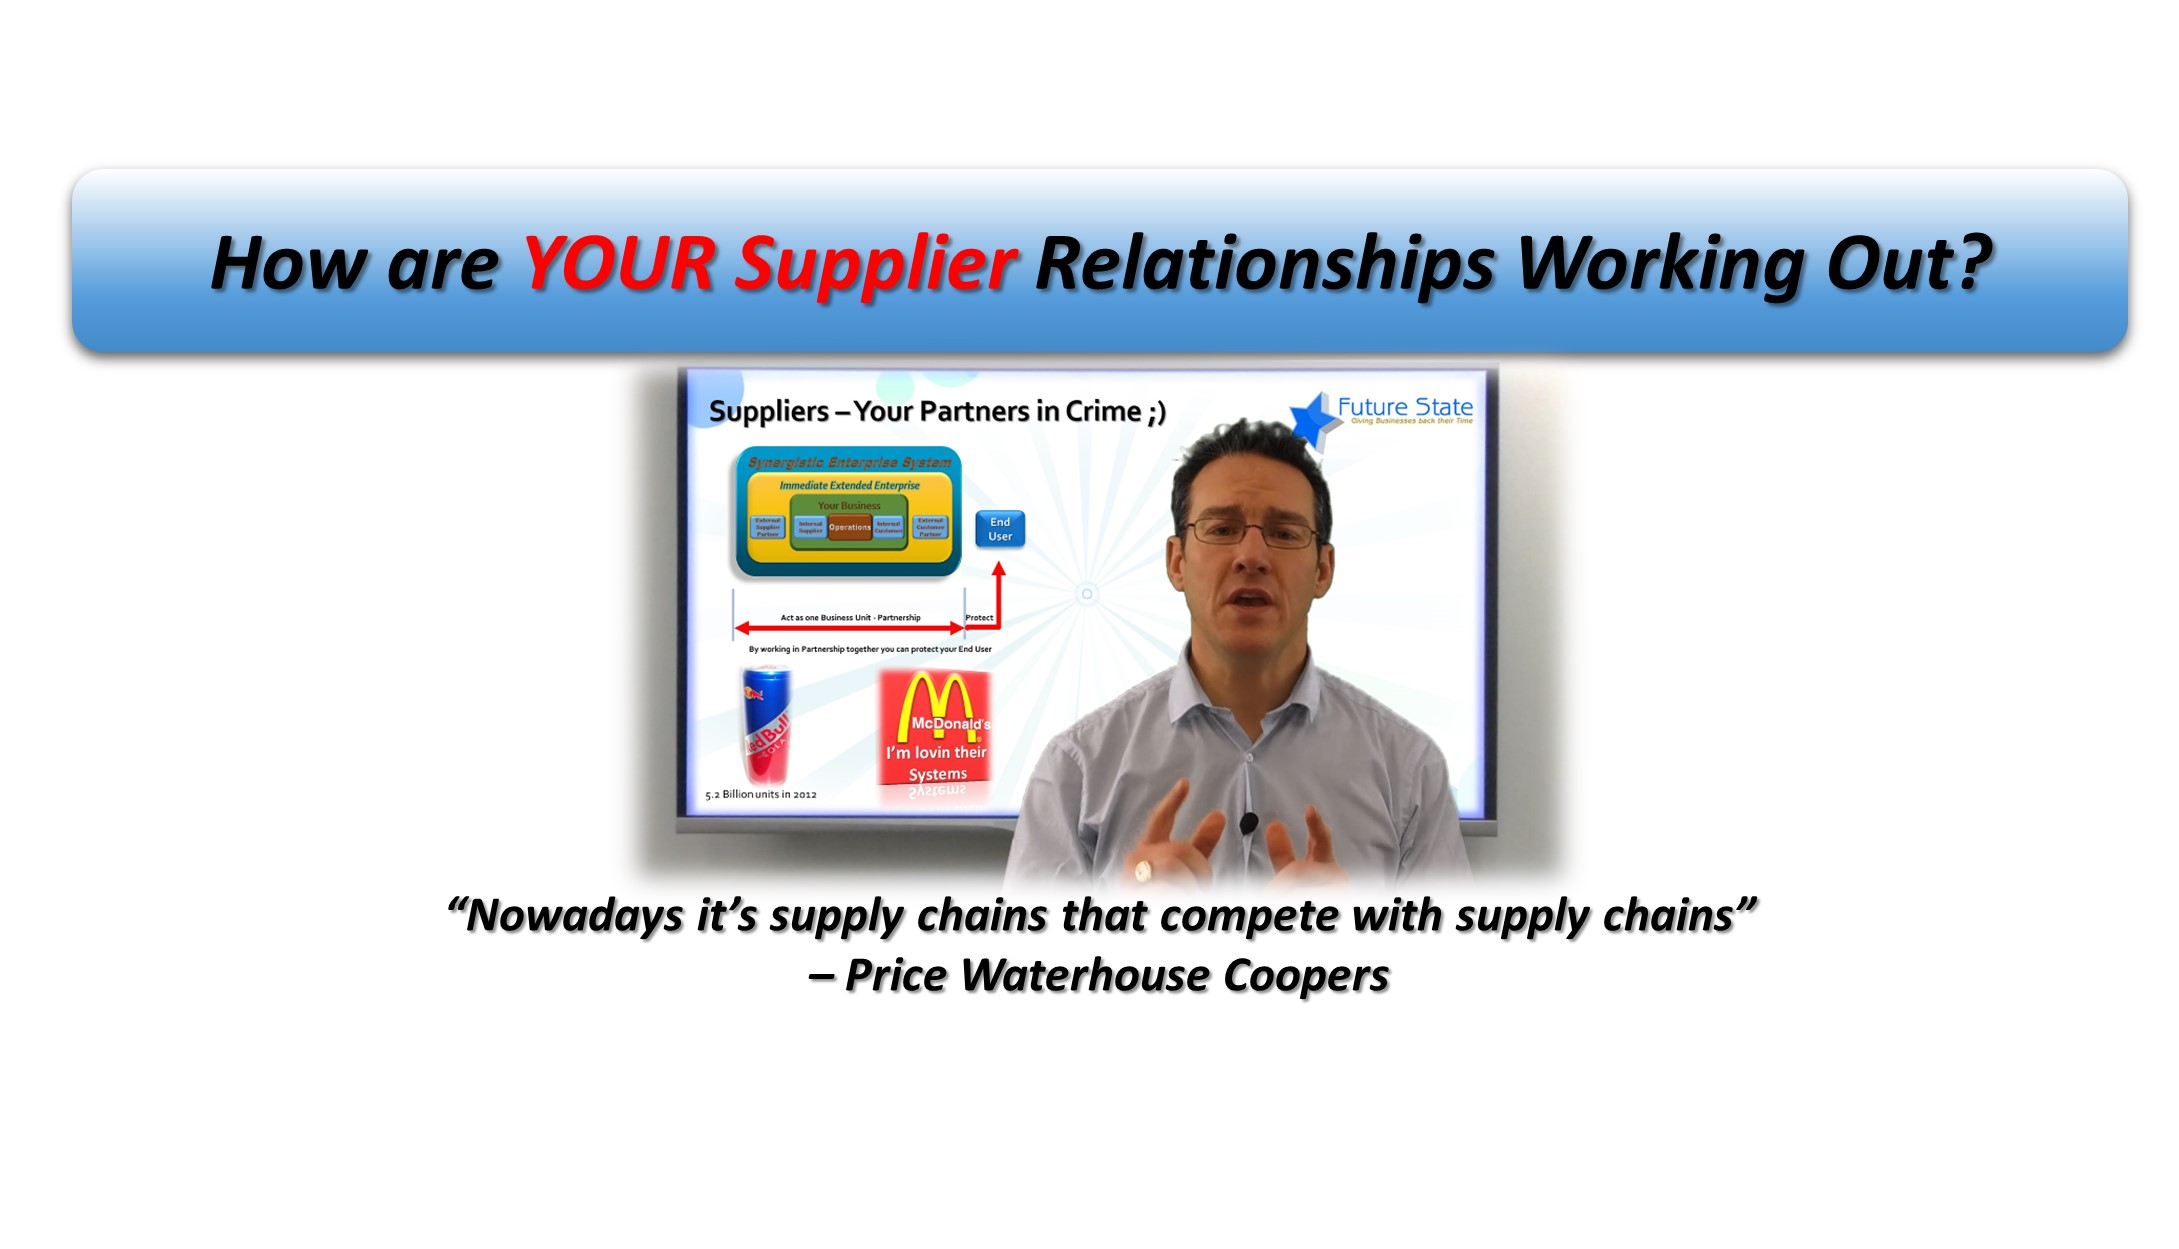 How are Your Supplier Relationships Working Out?